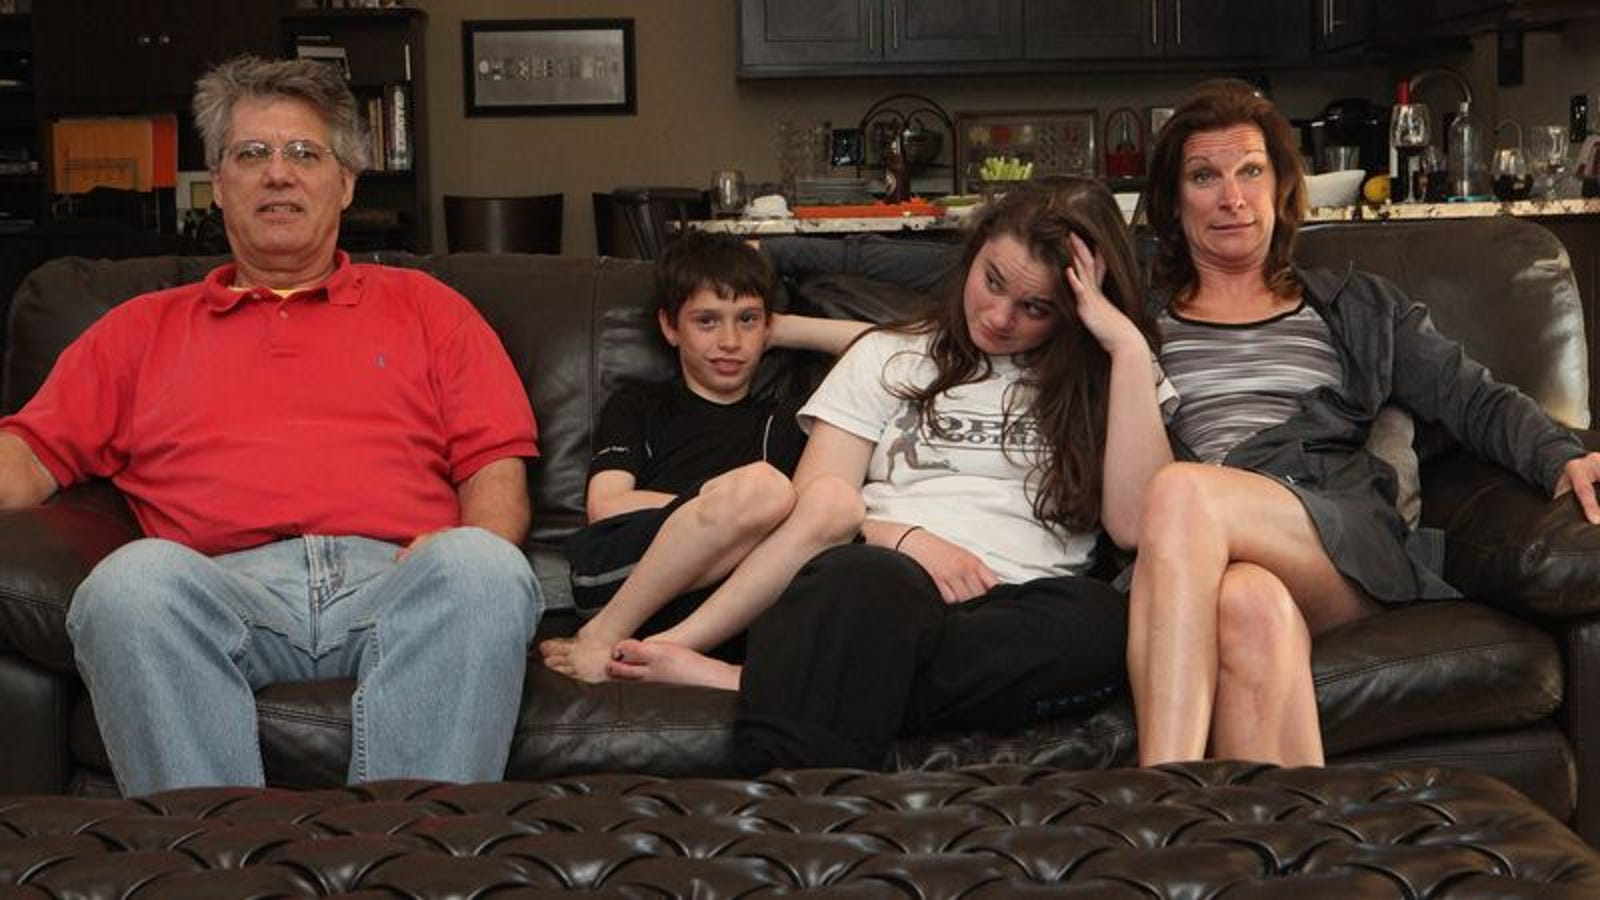 Family Watching Movie White-Knuckles It Through Unexpected